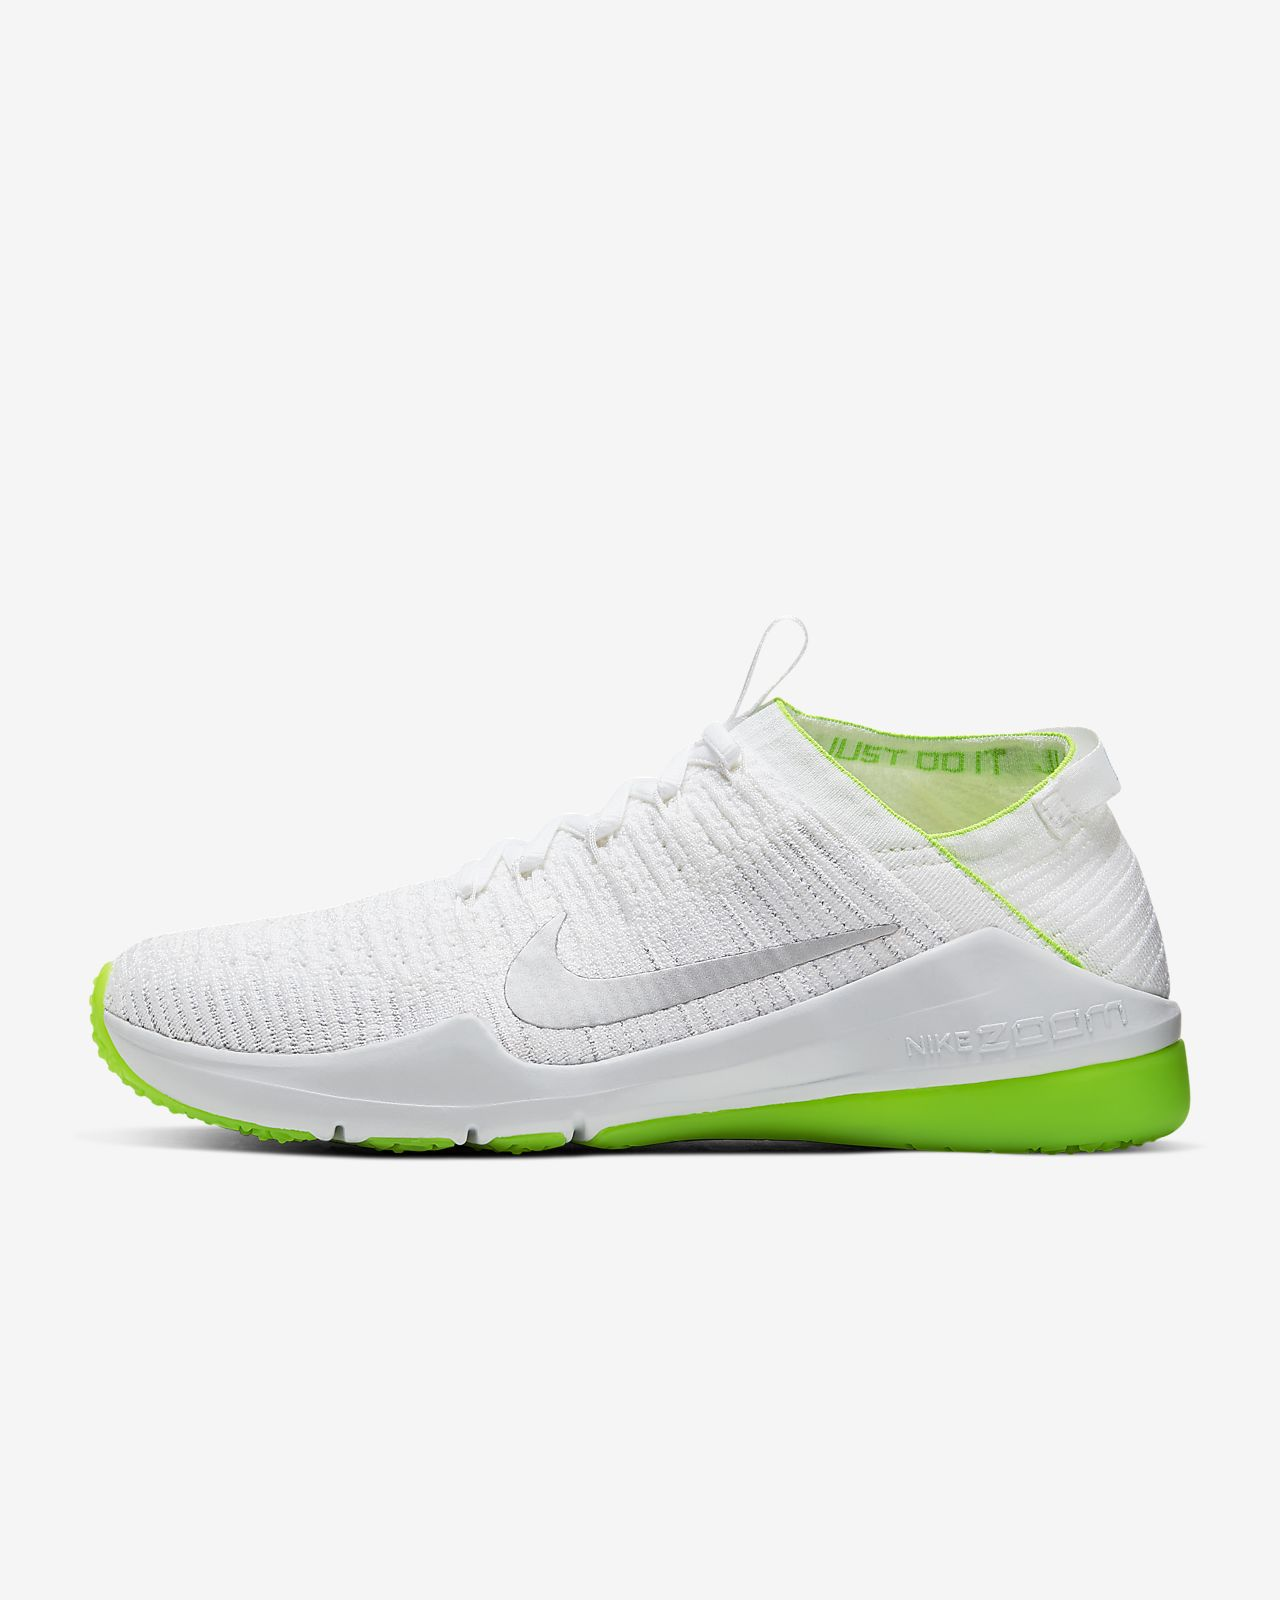 Sapatilhas de ginásio/treino/boxe Nike Air Zoom Fearless Flyknit 2 para mulher